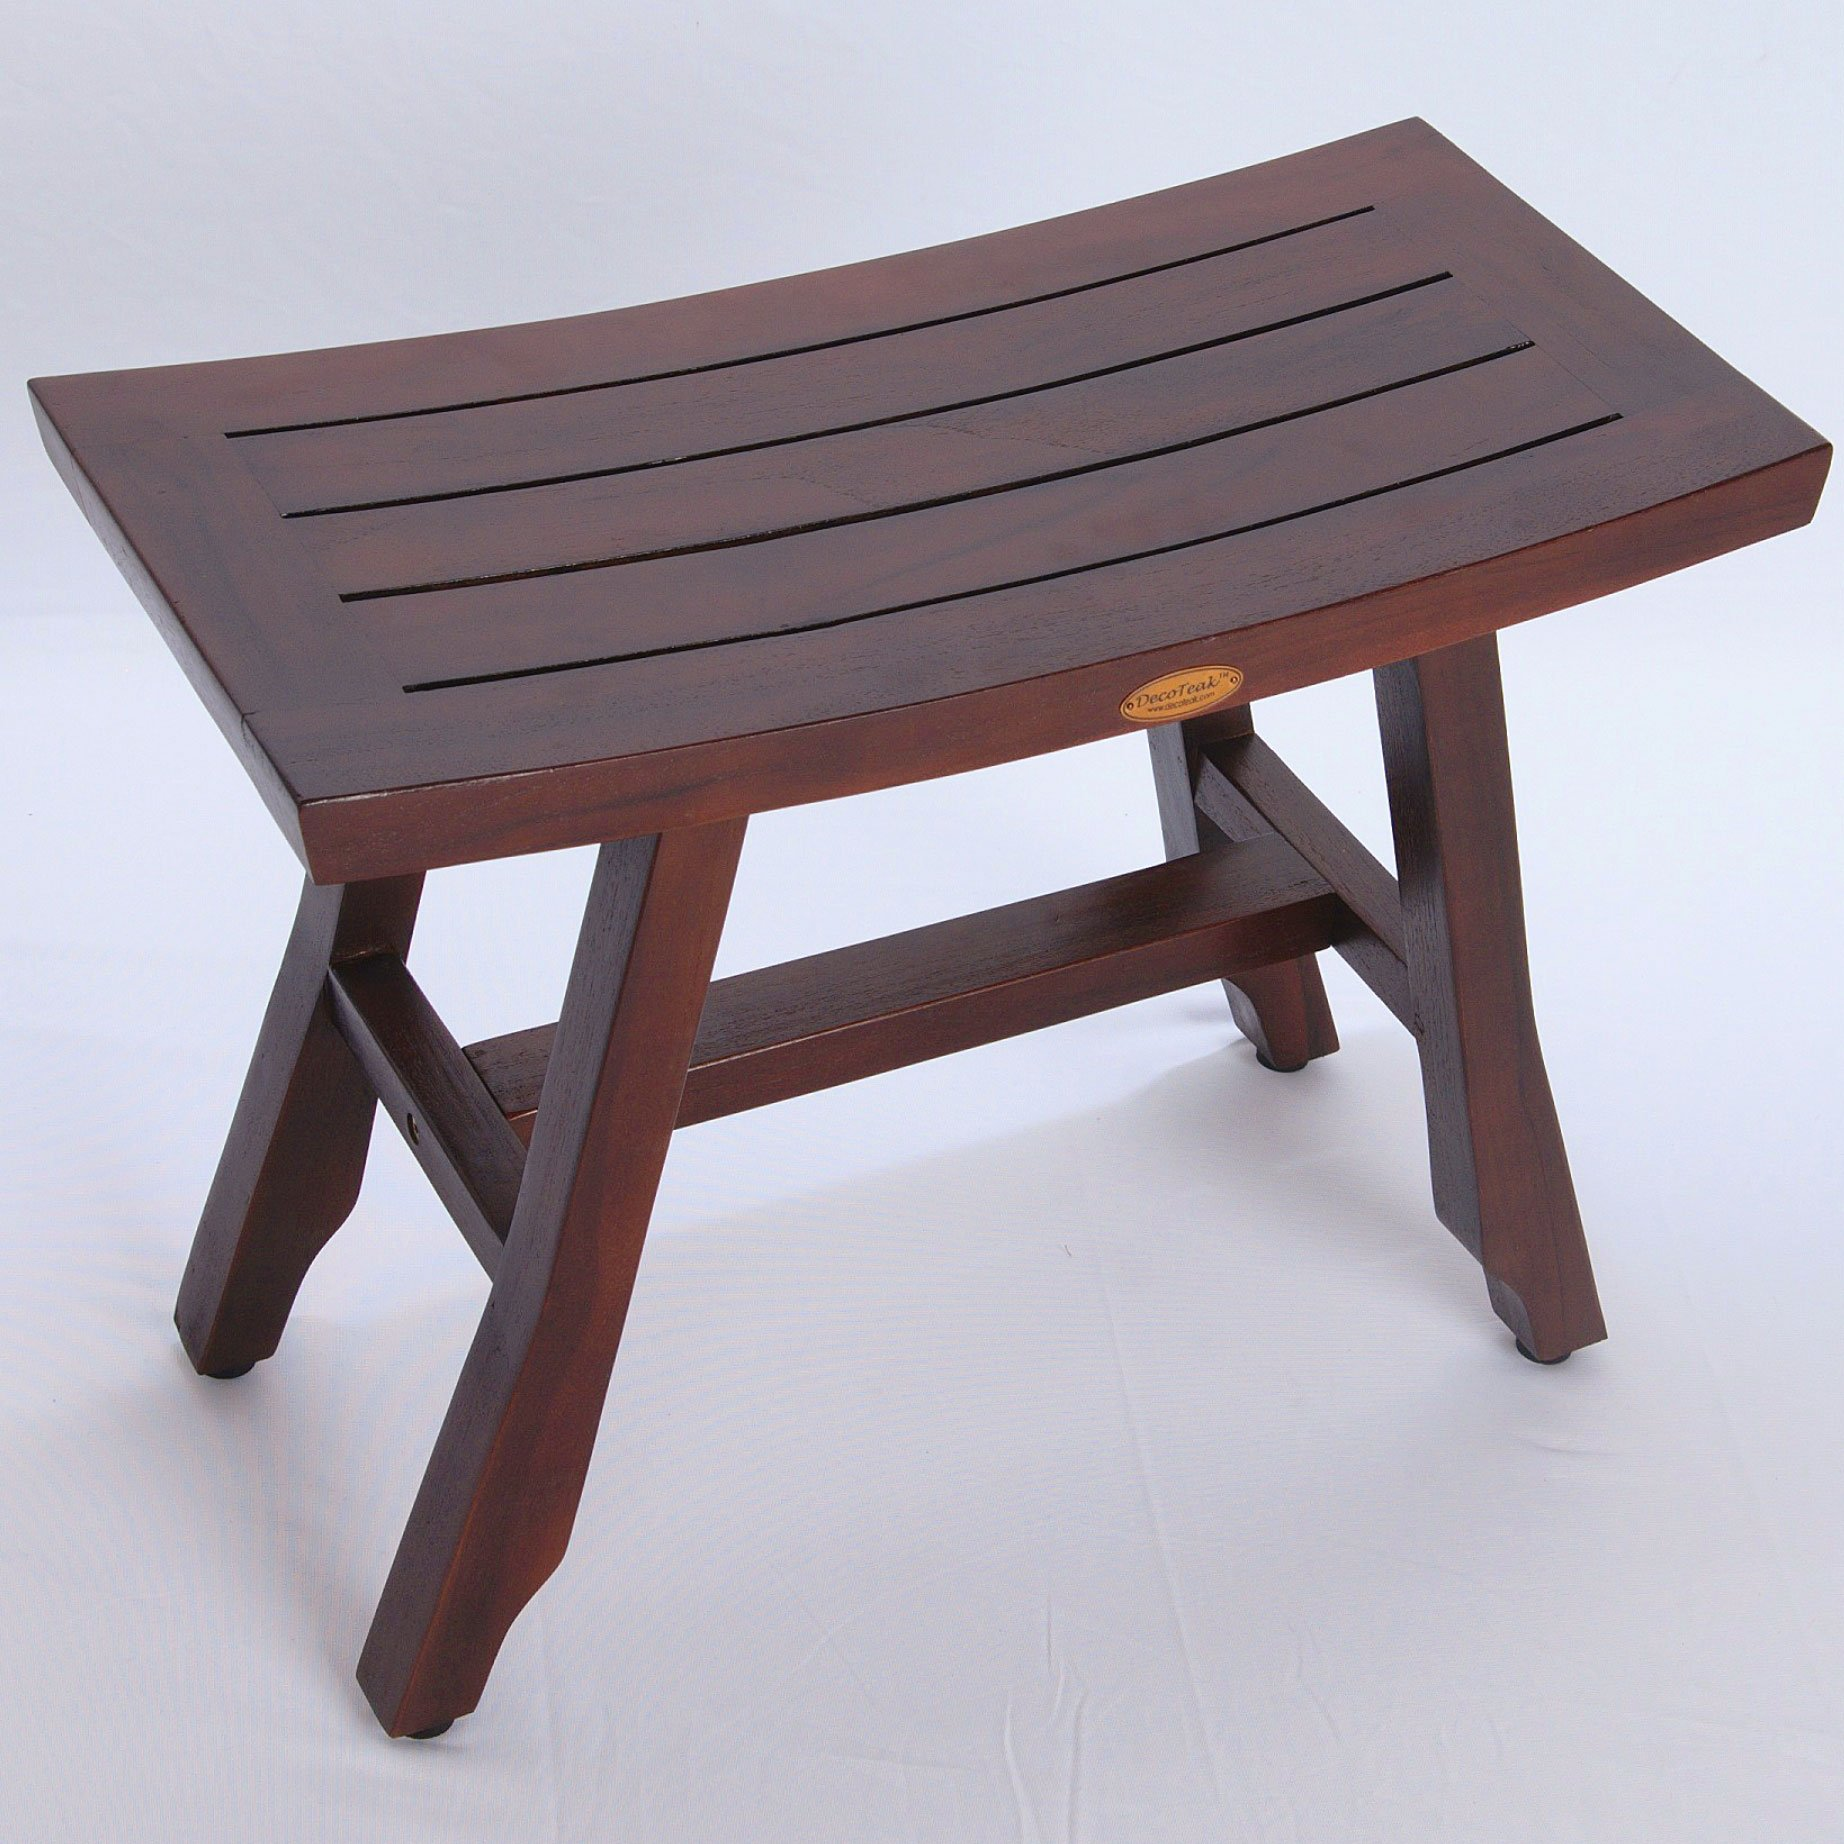 DecoTeak Satori 24'' Eastern Style Teak Shower Bench